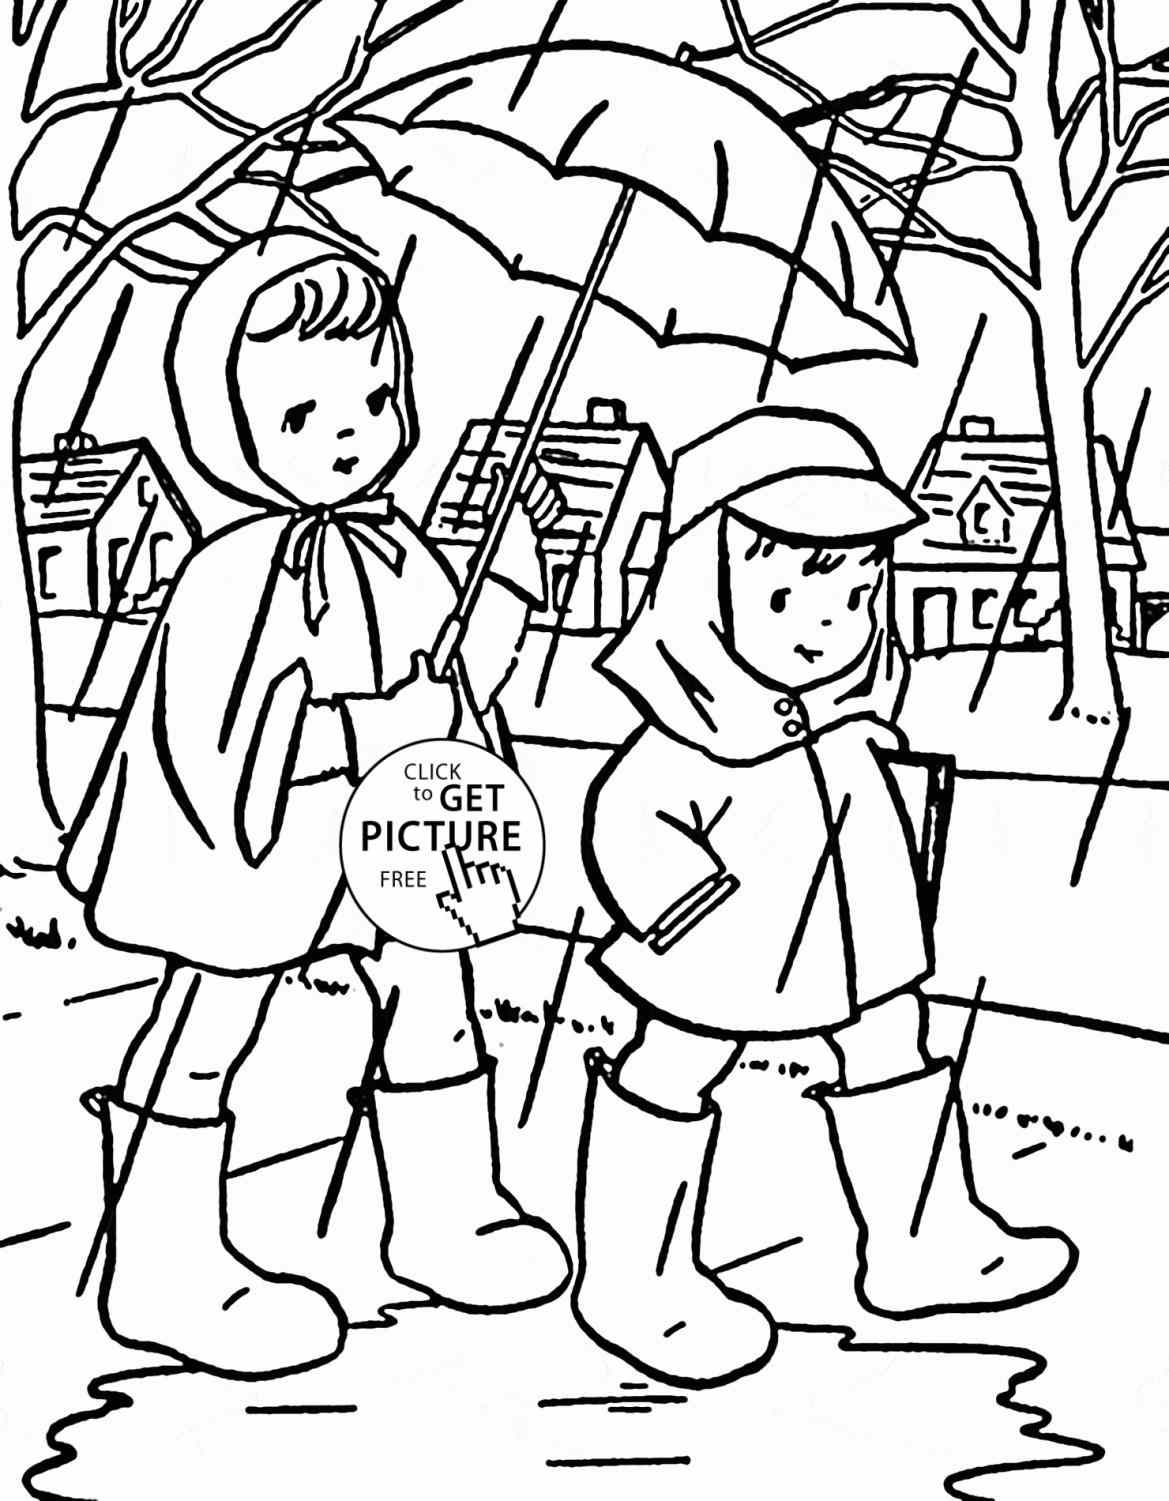 rainy day coloring pages for preschoolers unique duck coloring pages for toddlers thousand of the rainy day coloring preschoolers for pages